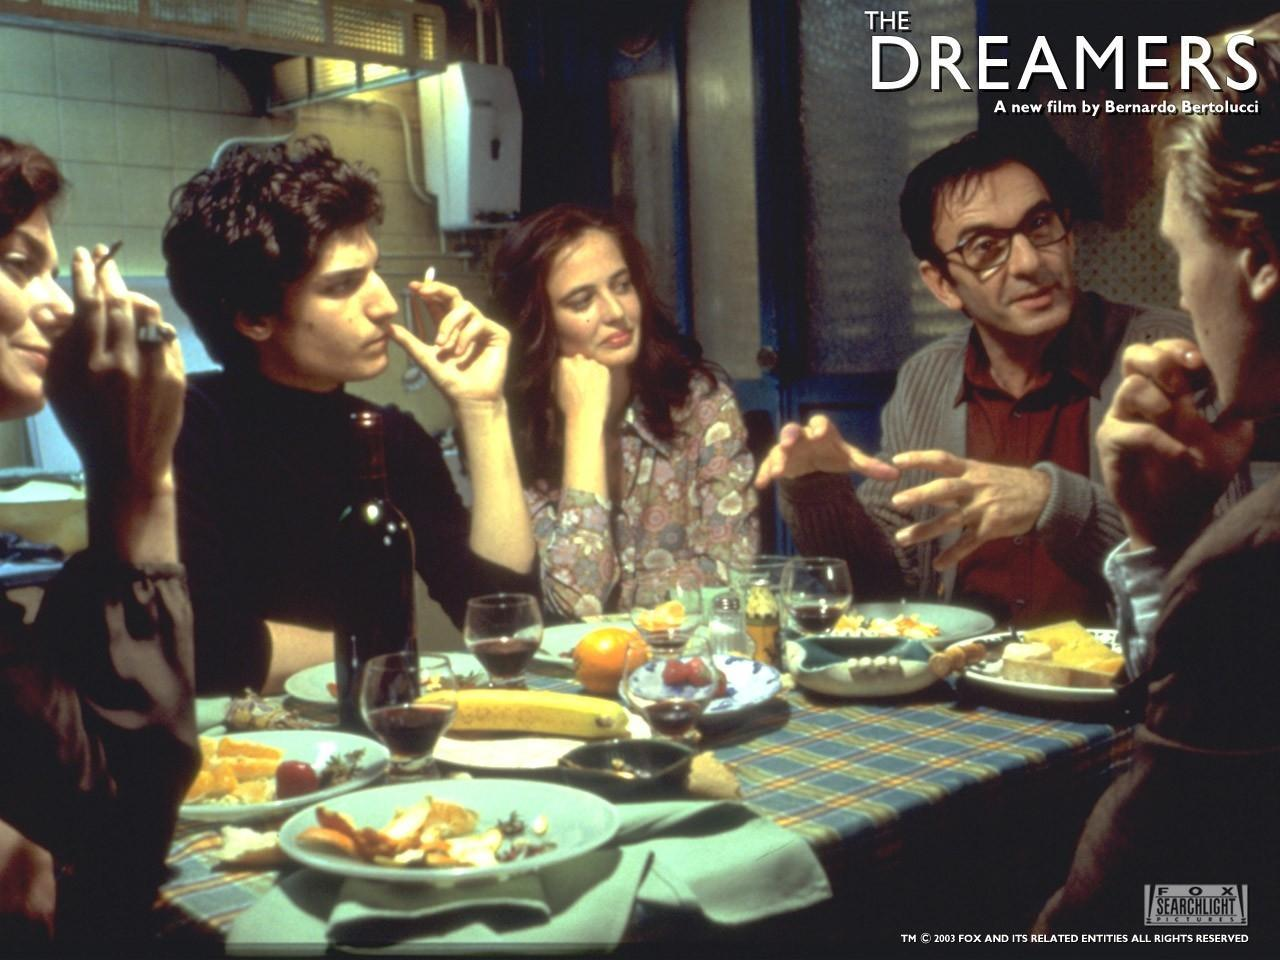 image gallery for the dreamers filmaffinity